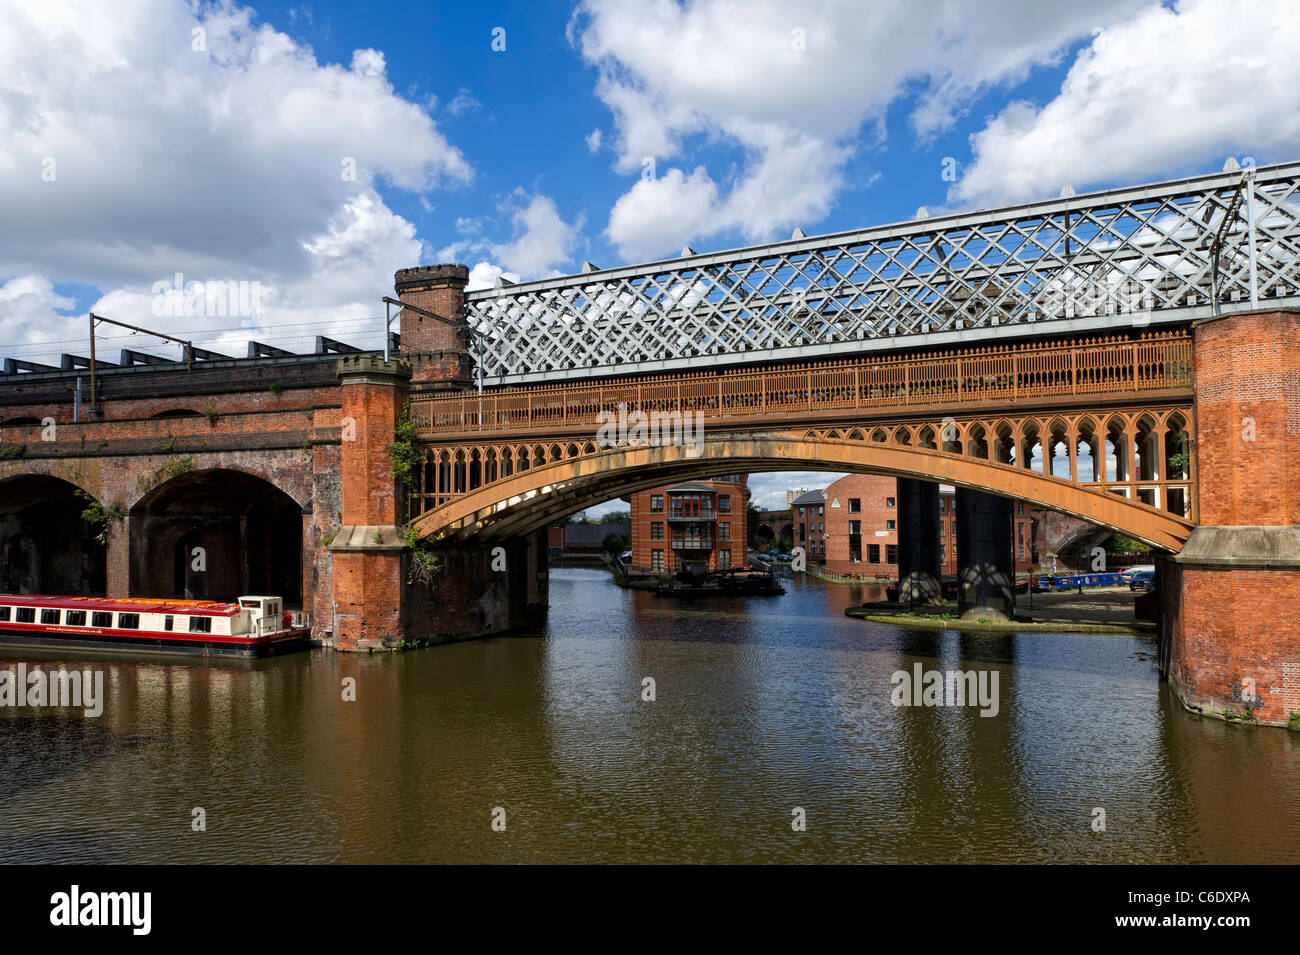 Rail bridge spanning the Bridgewater Canal in central Manchester - Stock Image